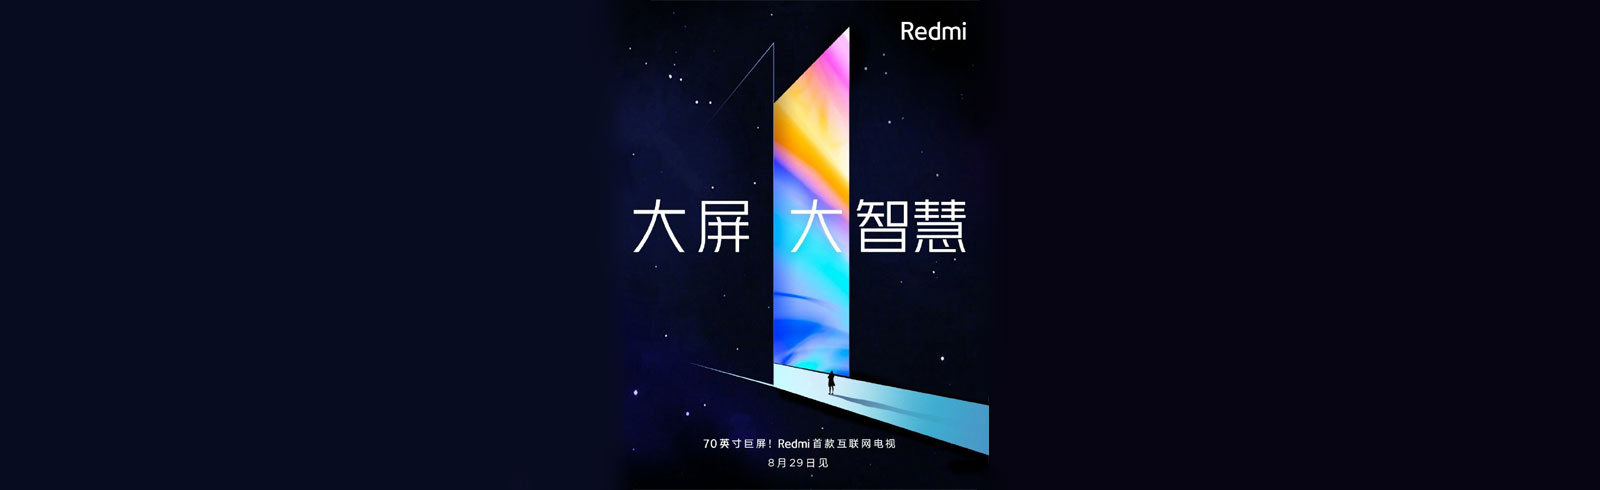 "Xiaomi will announce the first Redmi TV with a 70"" 4K display on August 29th"